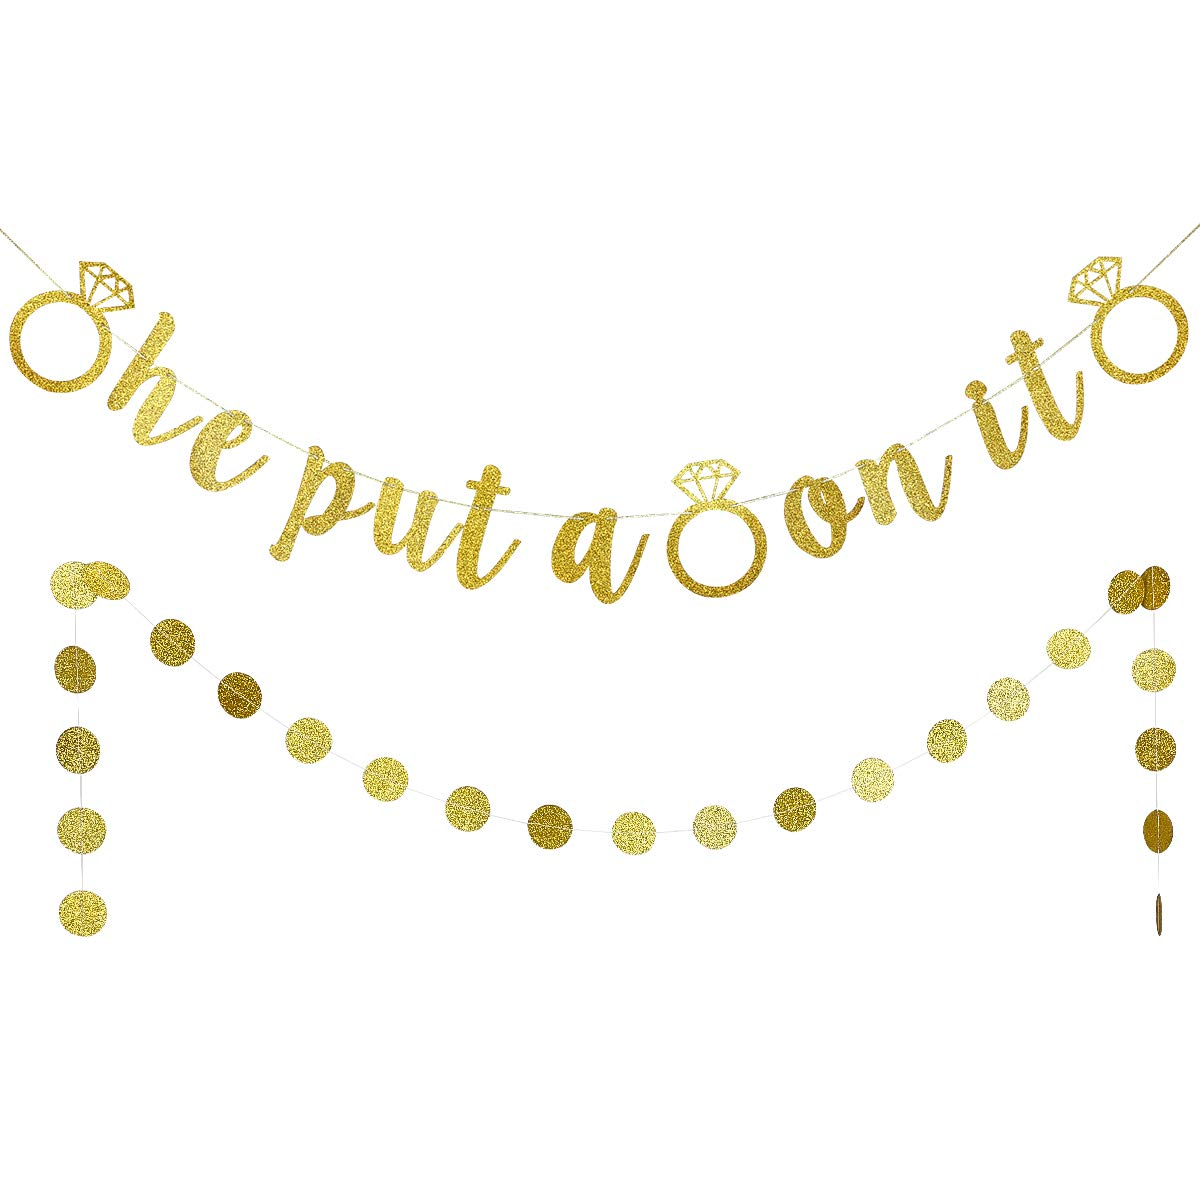 Gold Glittery He Put A Ring On It Banner and Gold Glitter Circle Dots Garland,Engagement Party Decoration Sign,Wedding Party Decoration Supplies